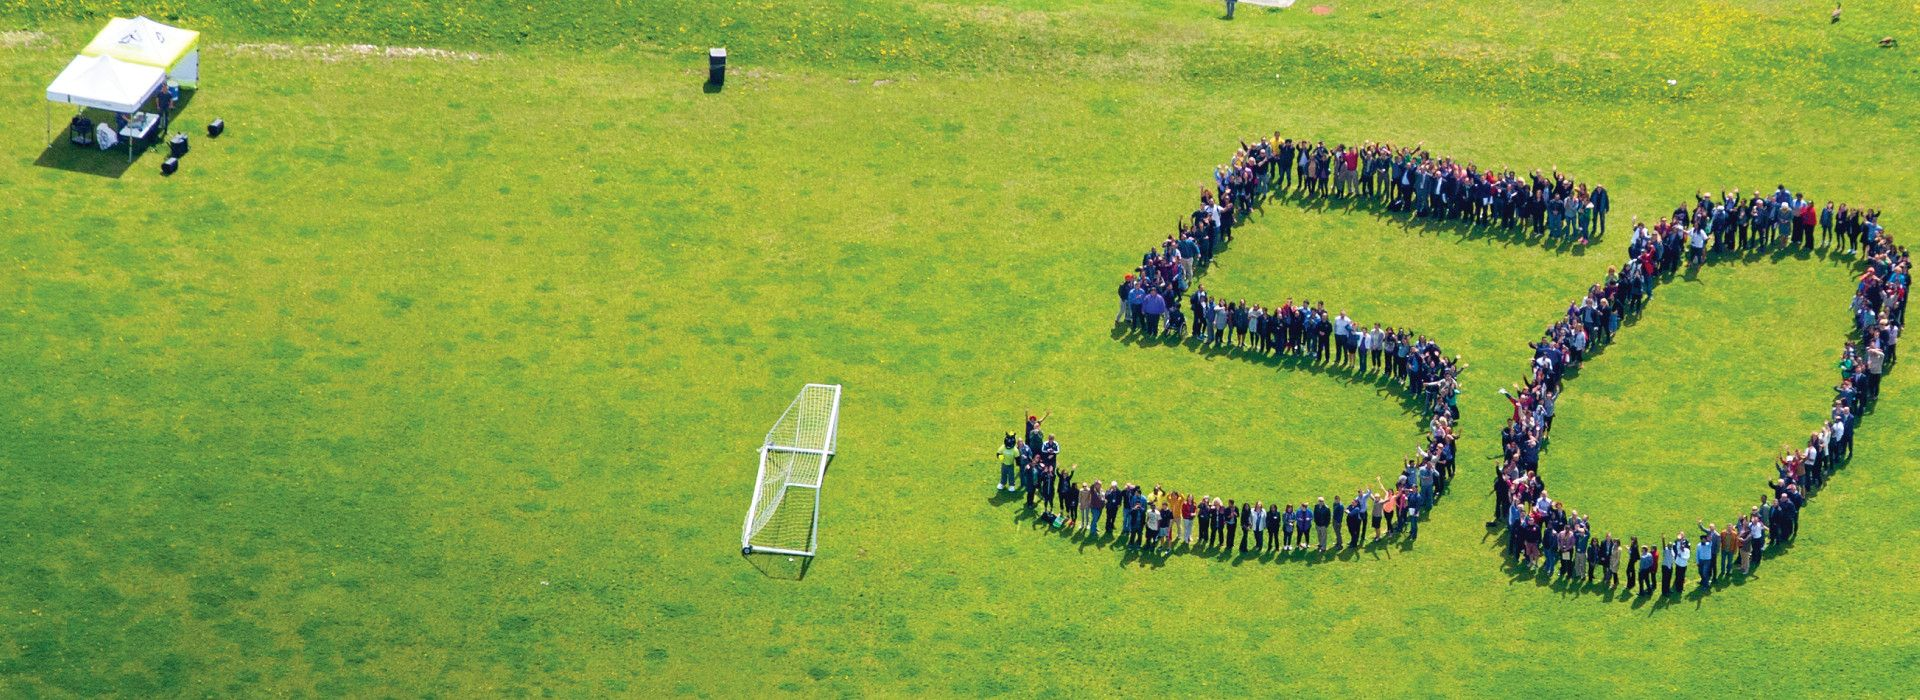 Picture of the Centennial community standing in a large 50 on the Progress Campus soccer field